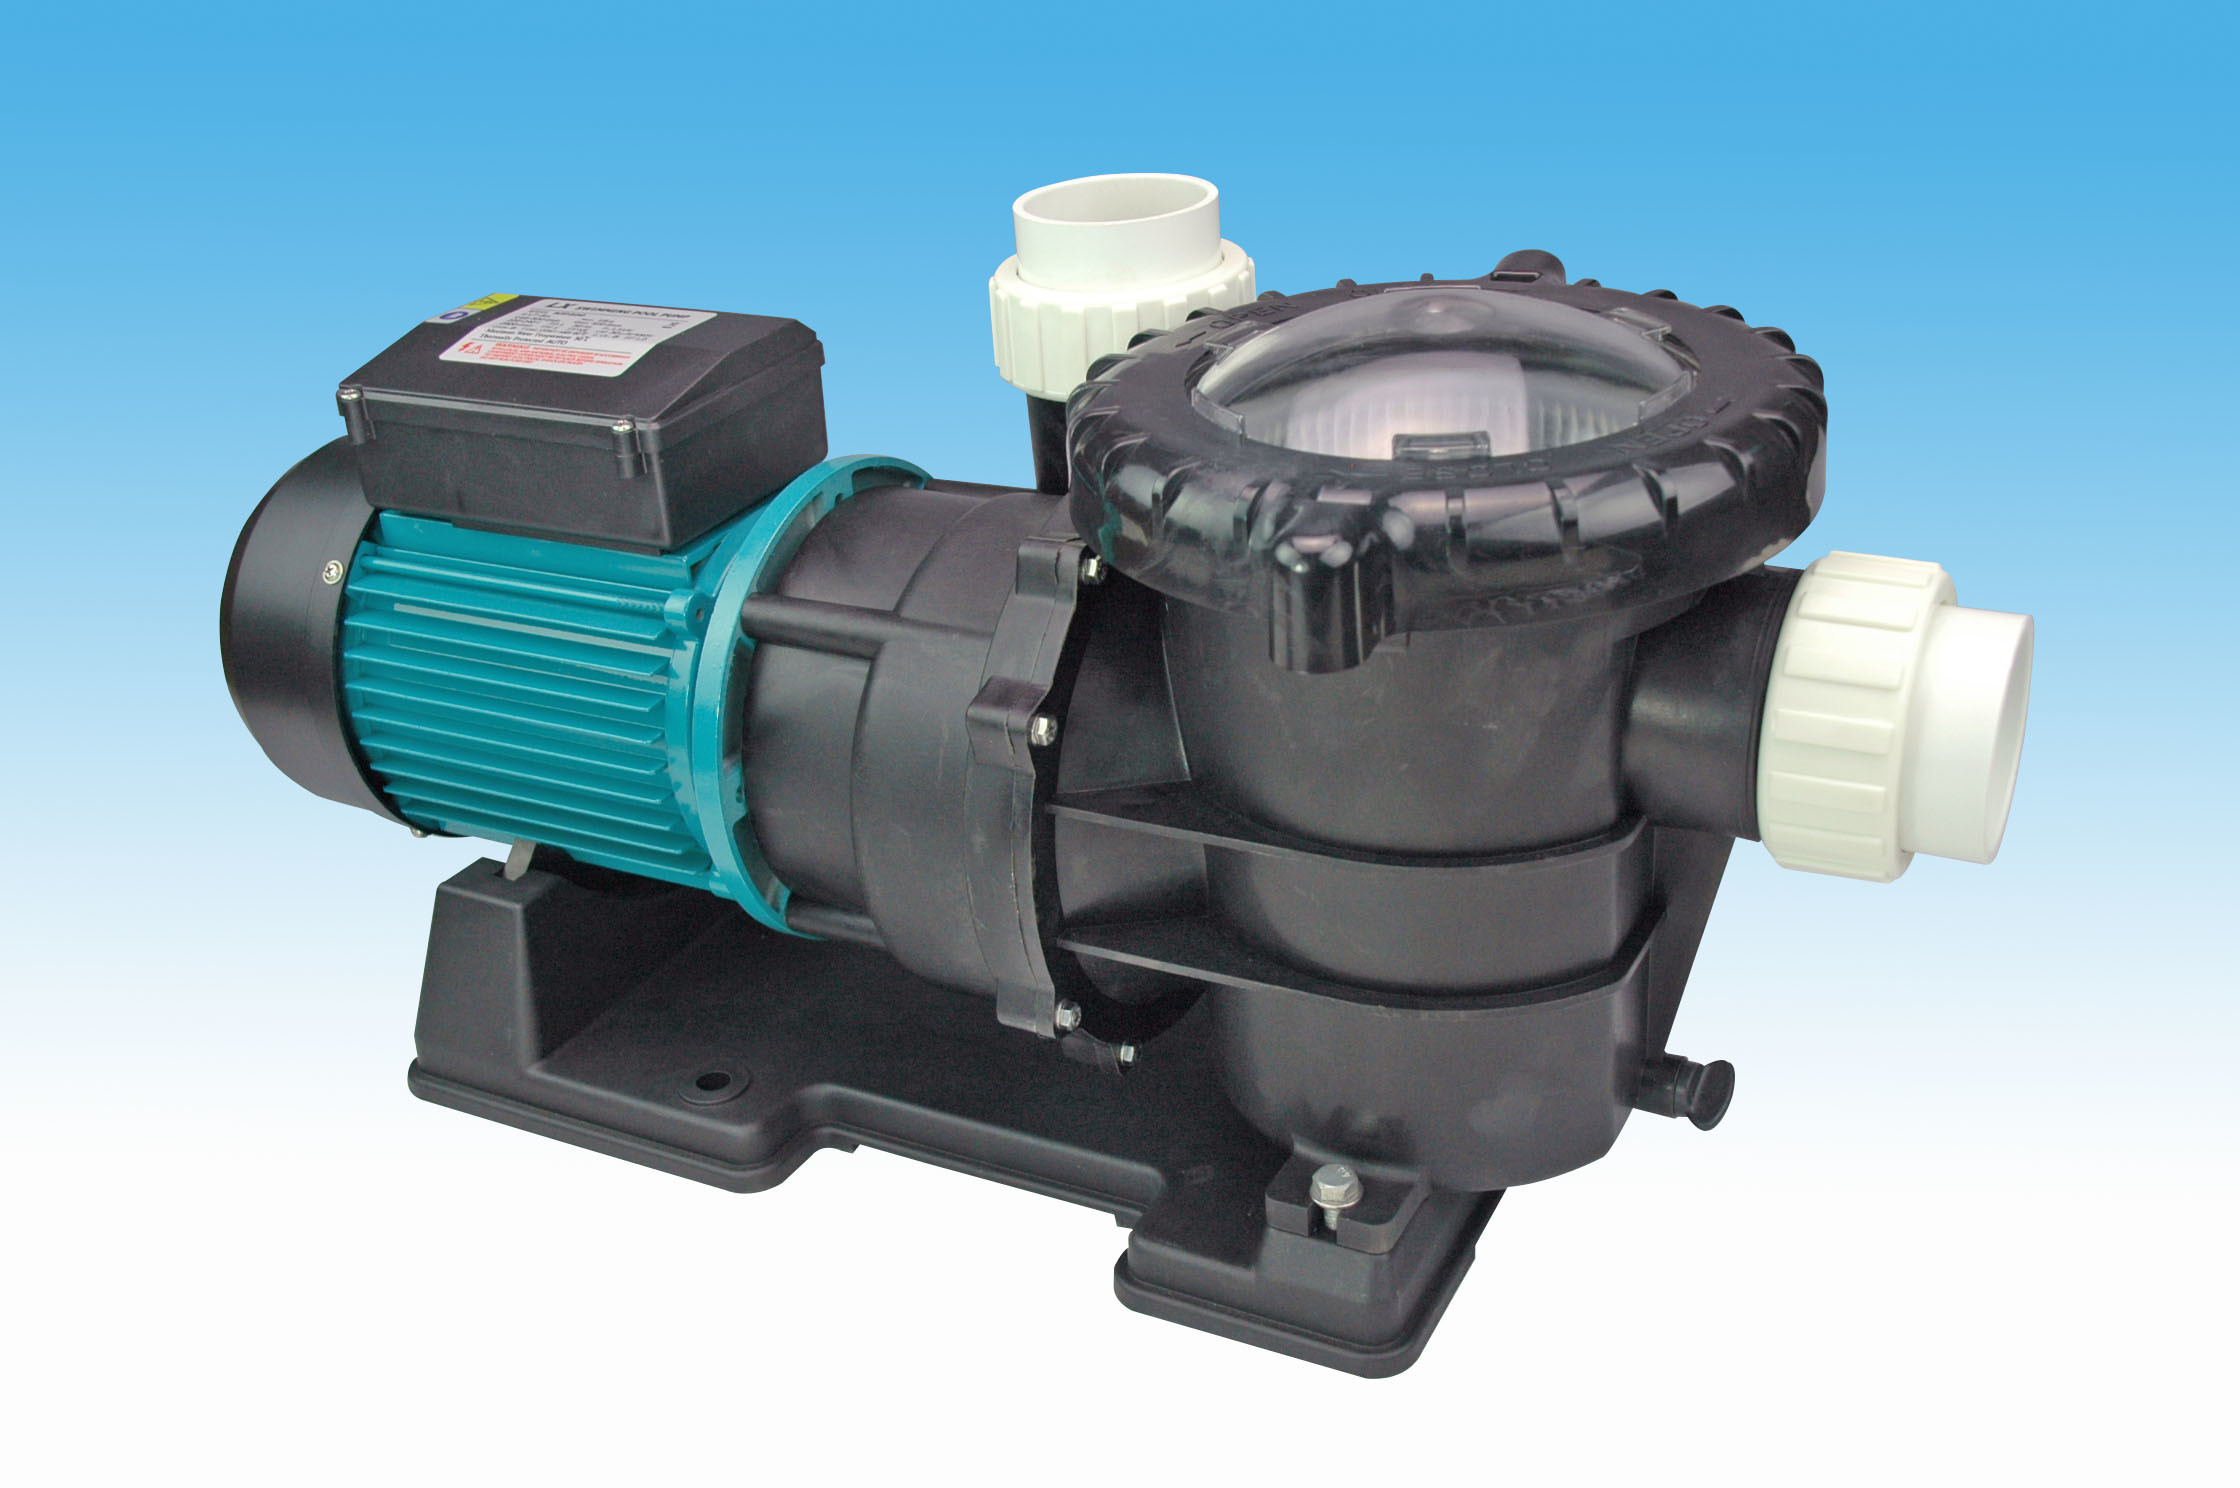 Big Factory Electric Swim Pool Water Pump, Circulate Pump for swimming Pool, Hotsale and Durable Pump for Swim Pool